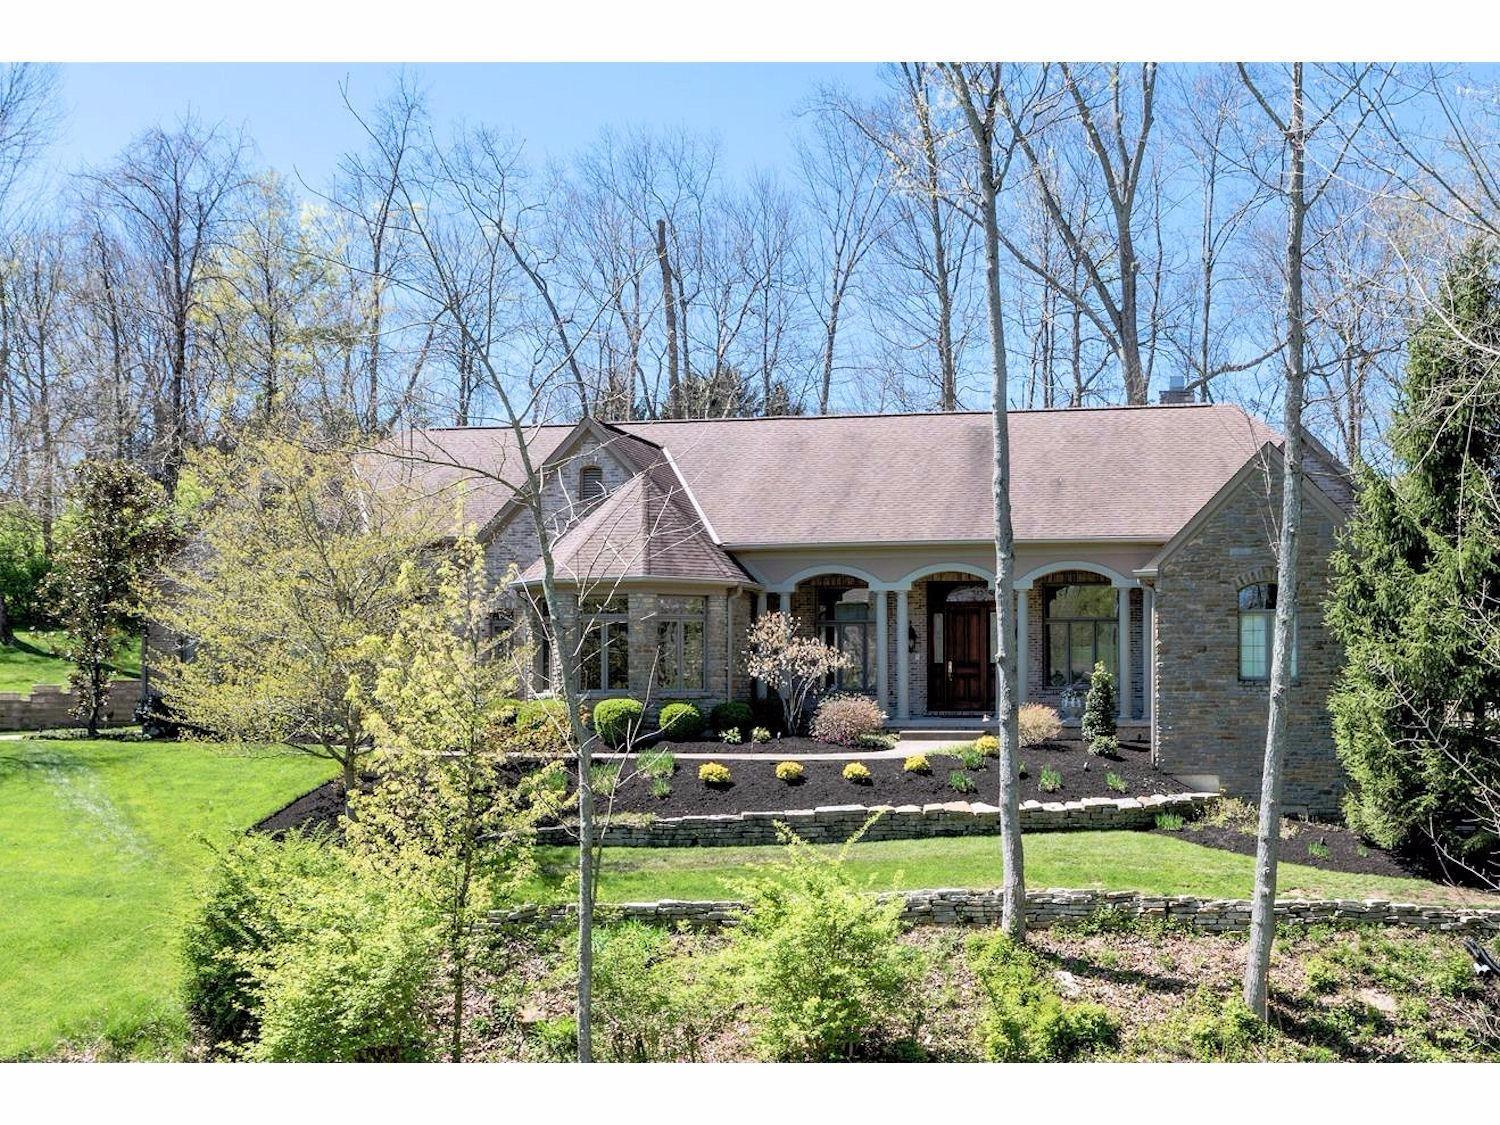 343 Summer View Drive, Anderson Twp, OH 45255